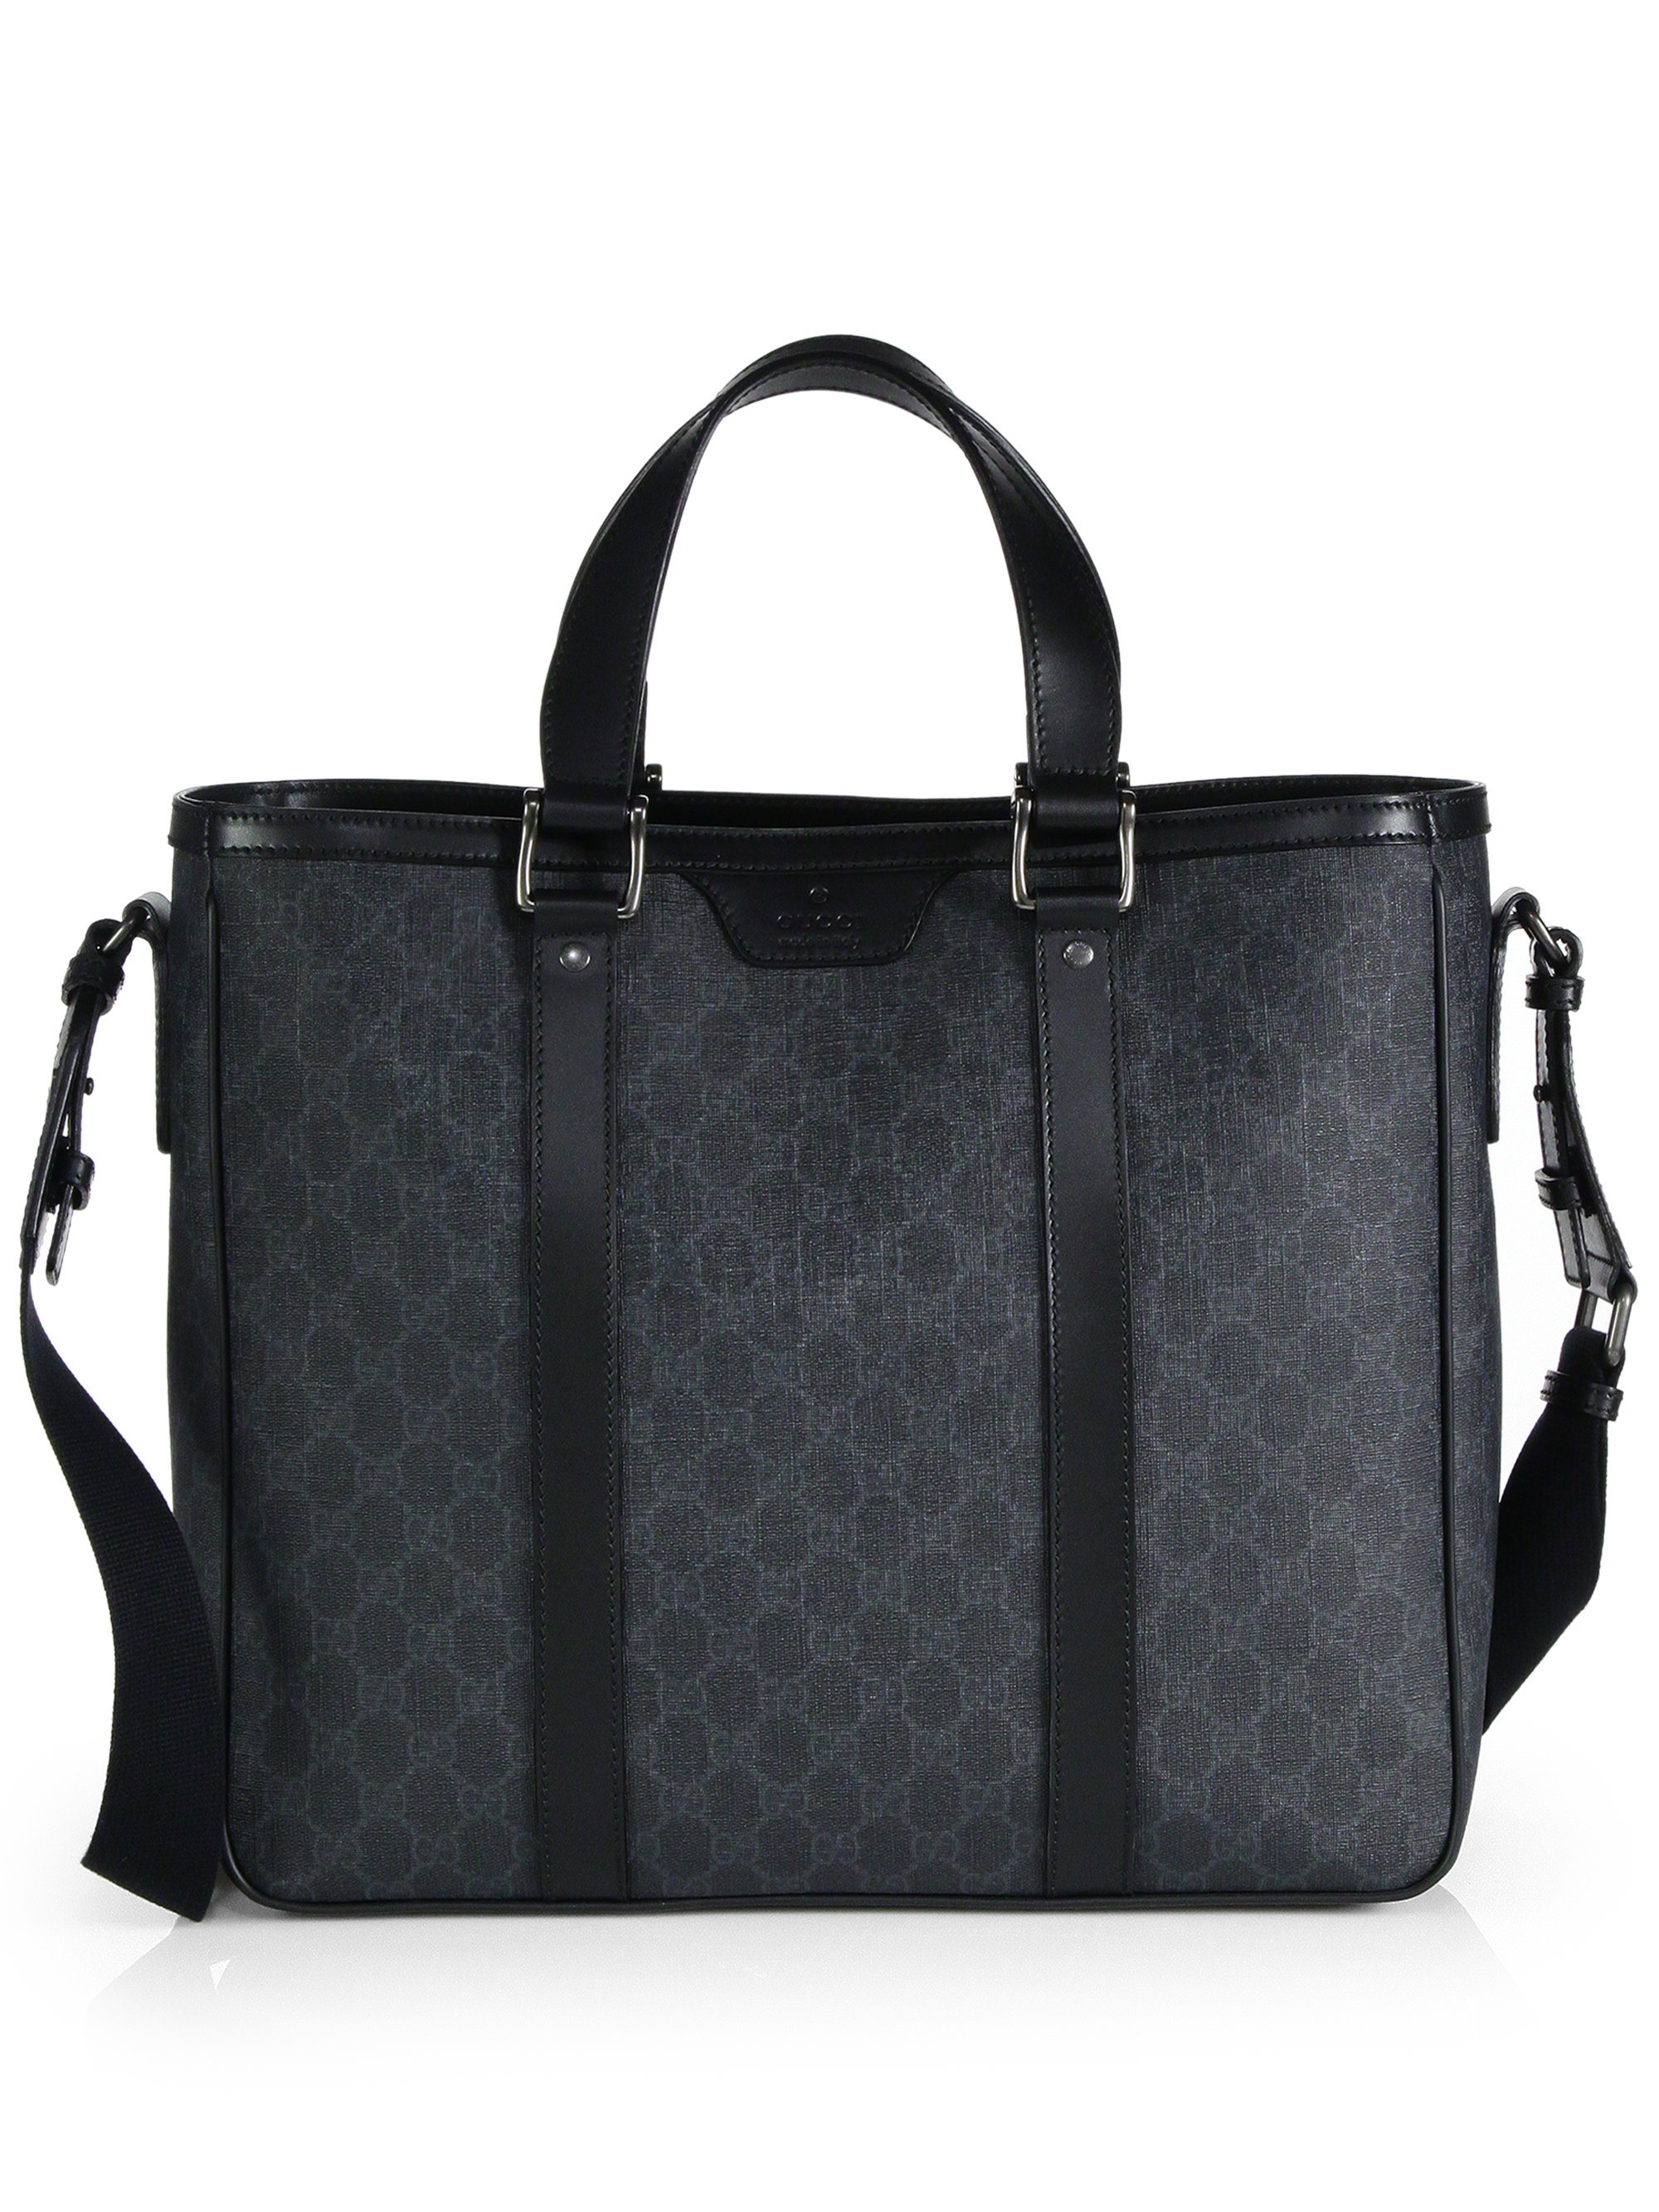 69baa6d86b Gucci Gg Supreme Canvas Tote in Black for Men - Lyst